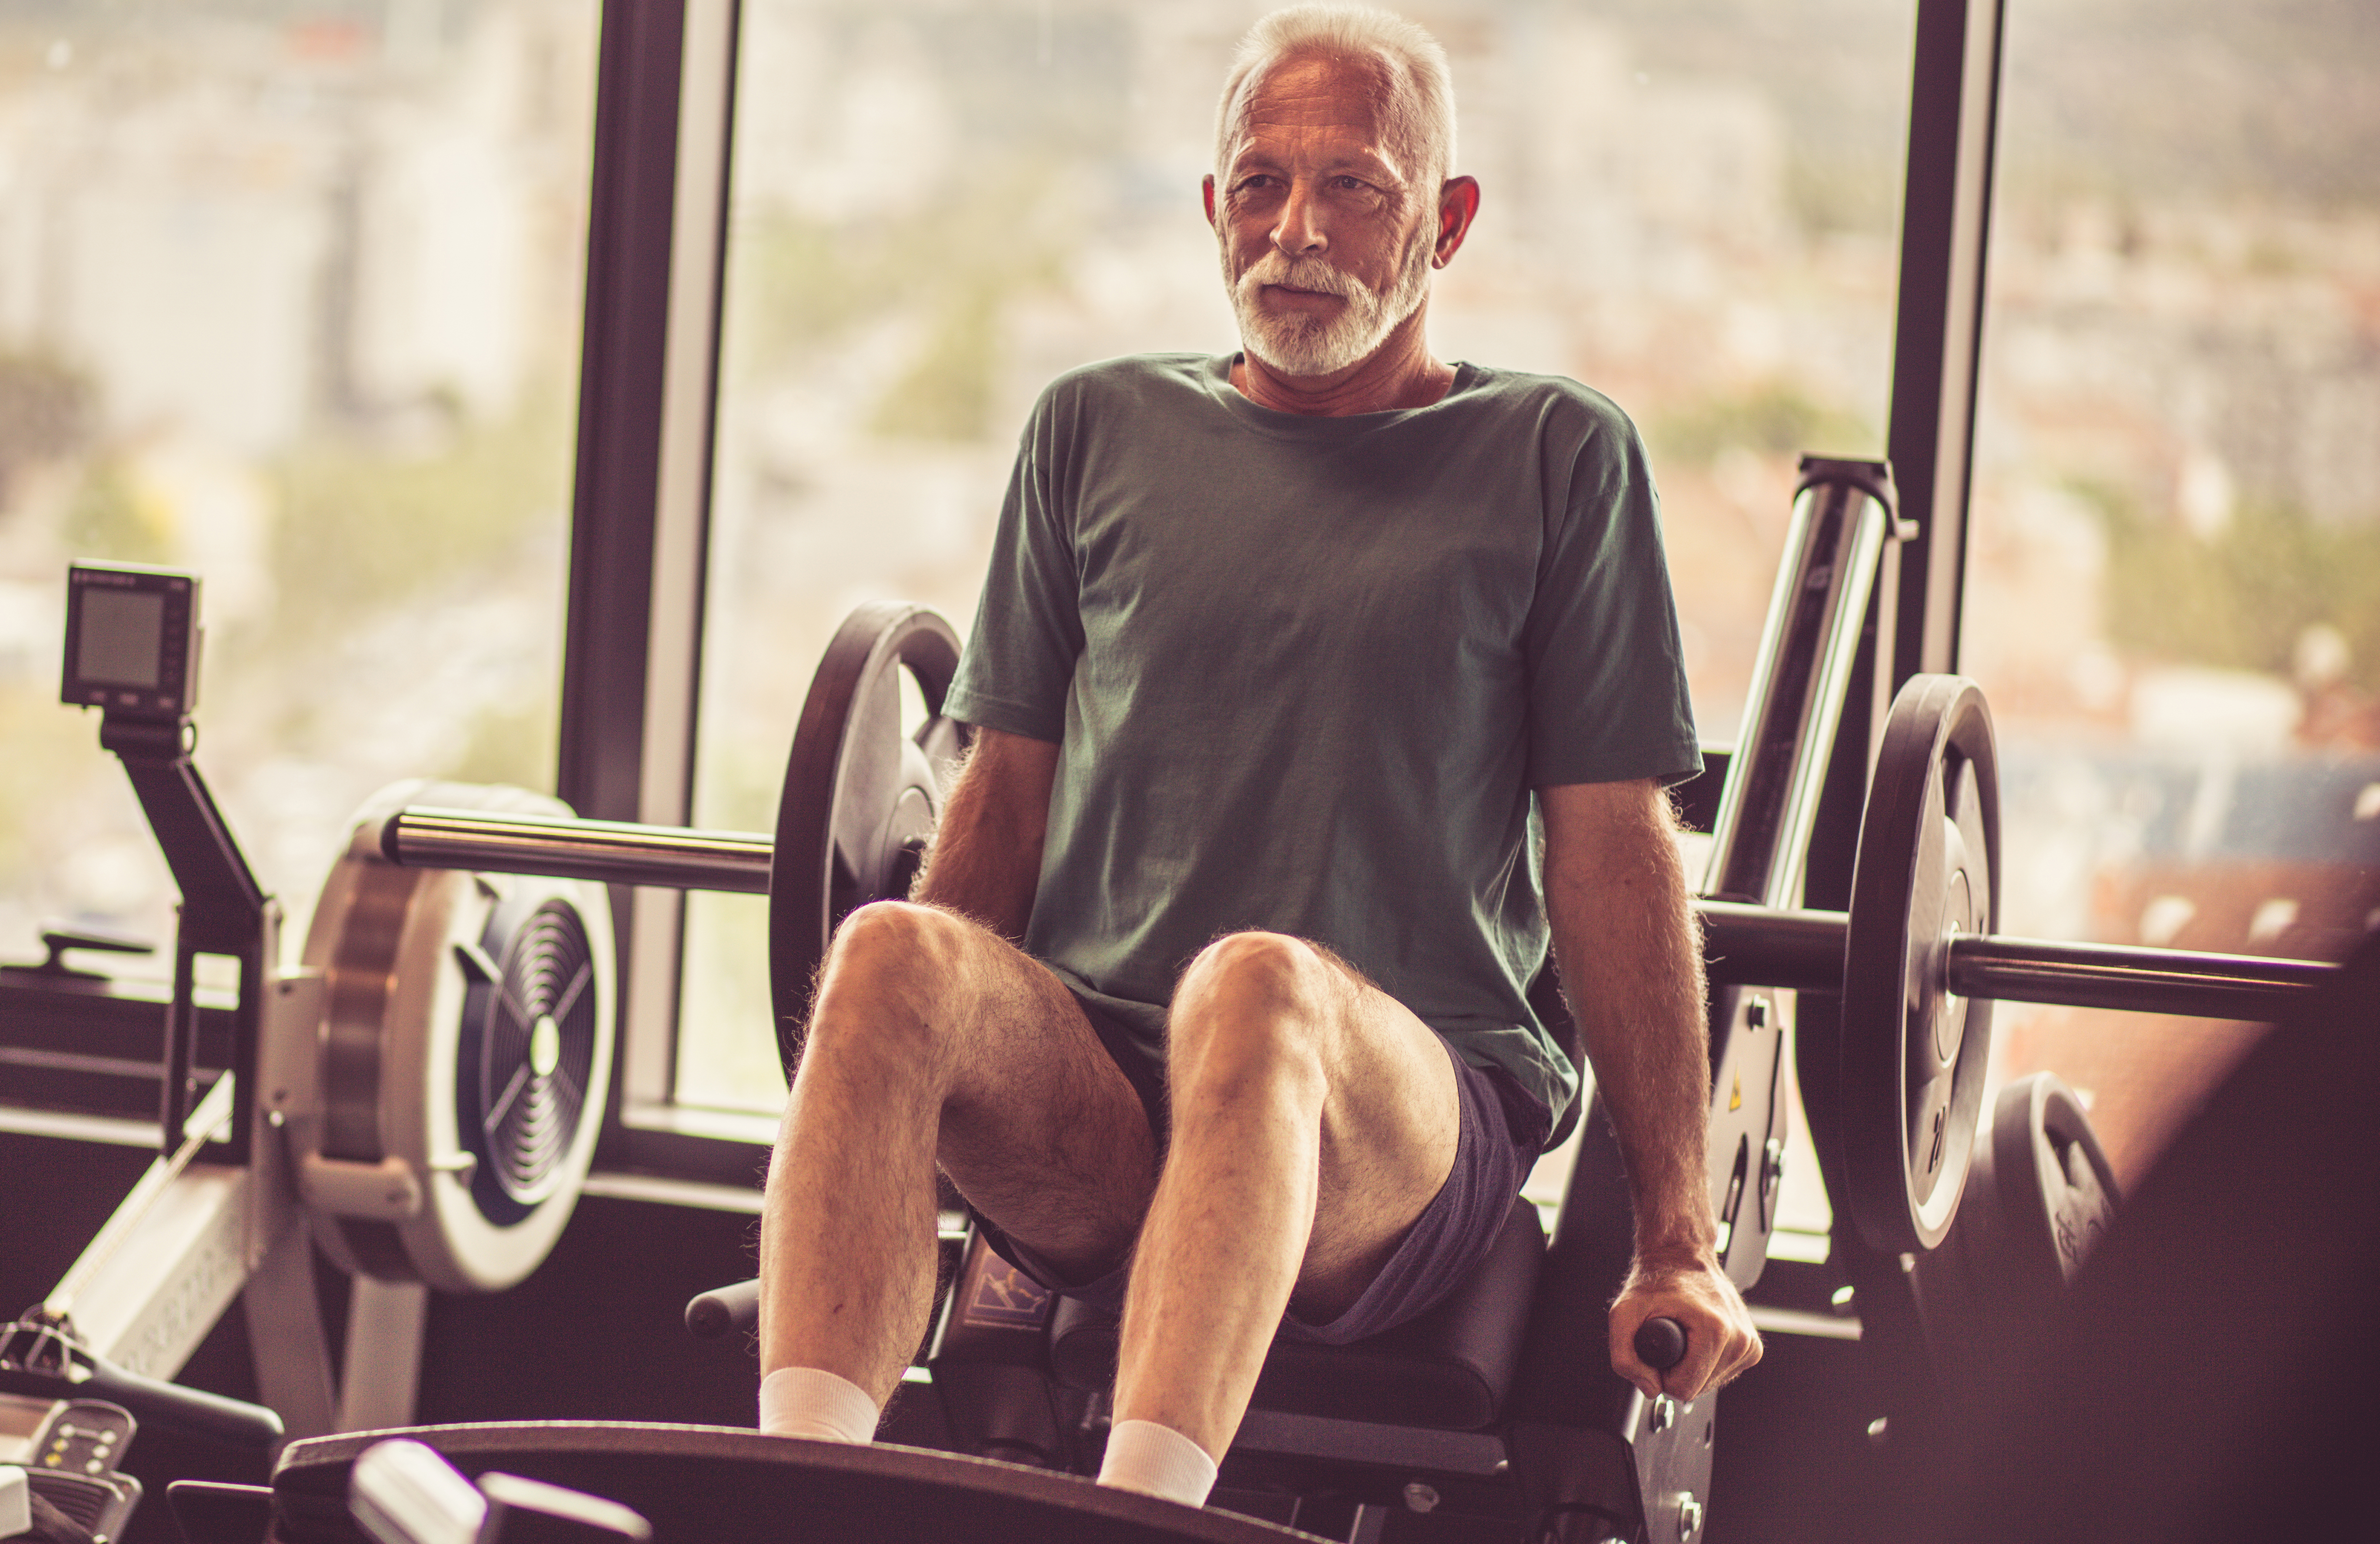 Lifting Weights with Aortic Aneurysm: Detailed Guidelines